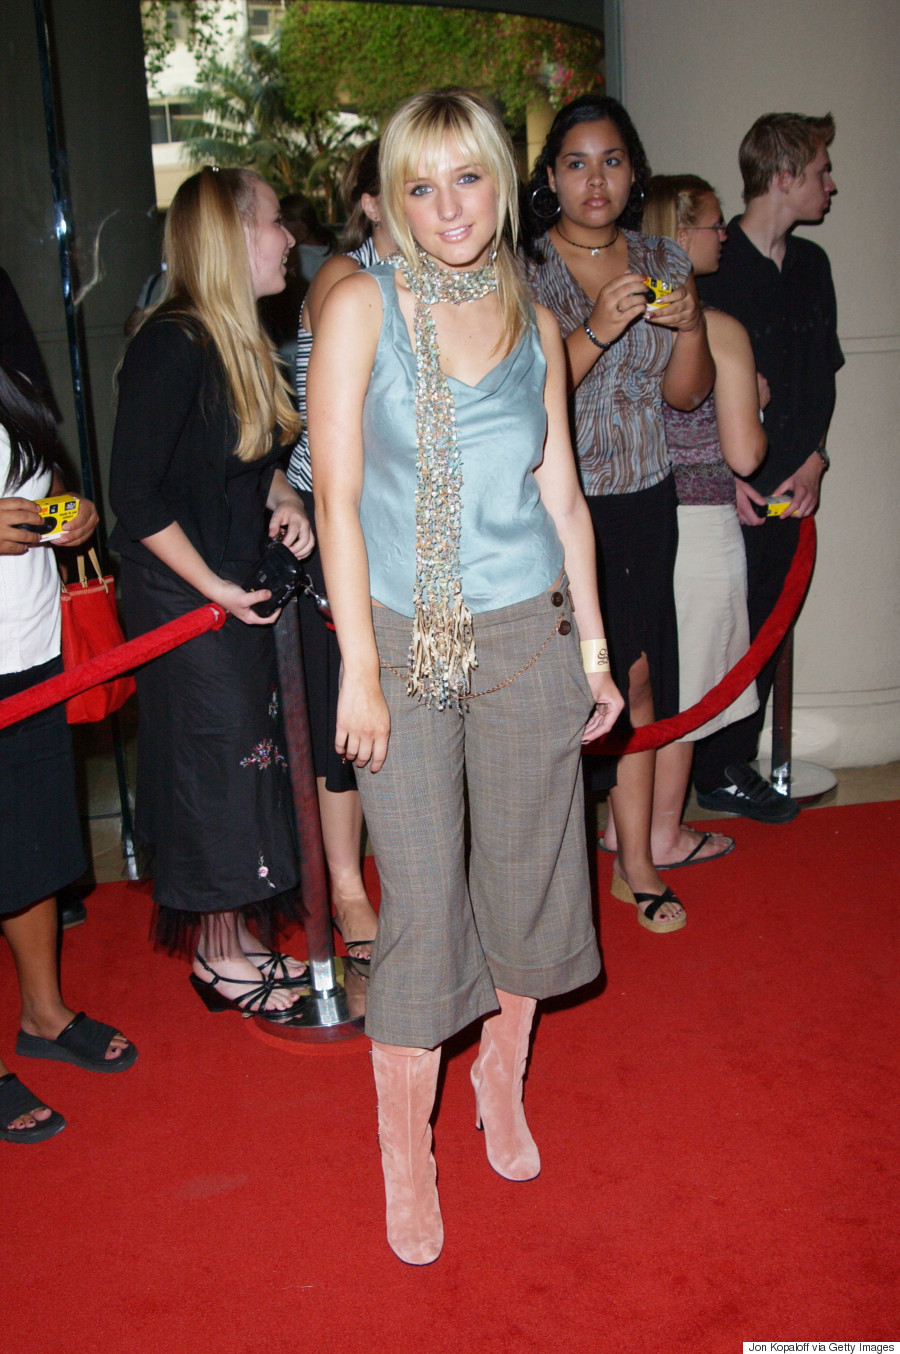 2000s fashion trends the going out clothes we used to wear